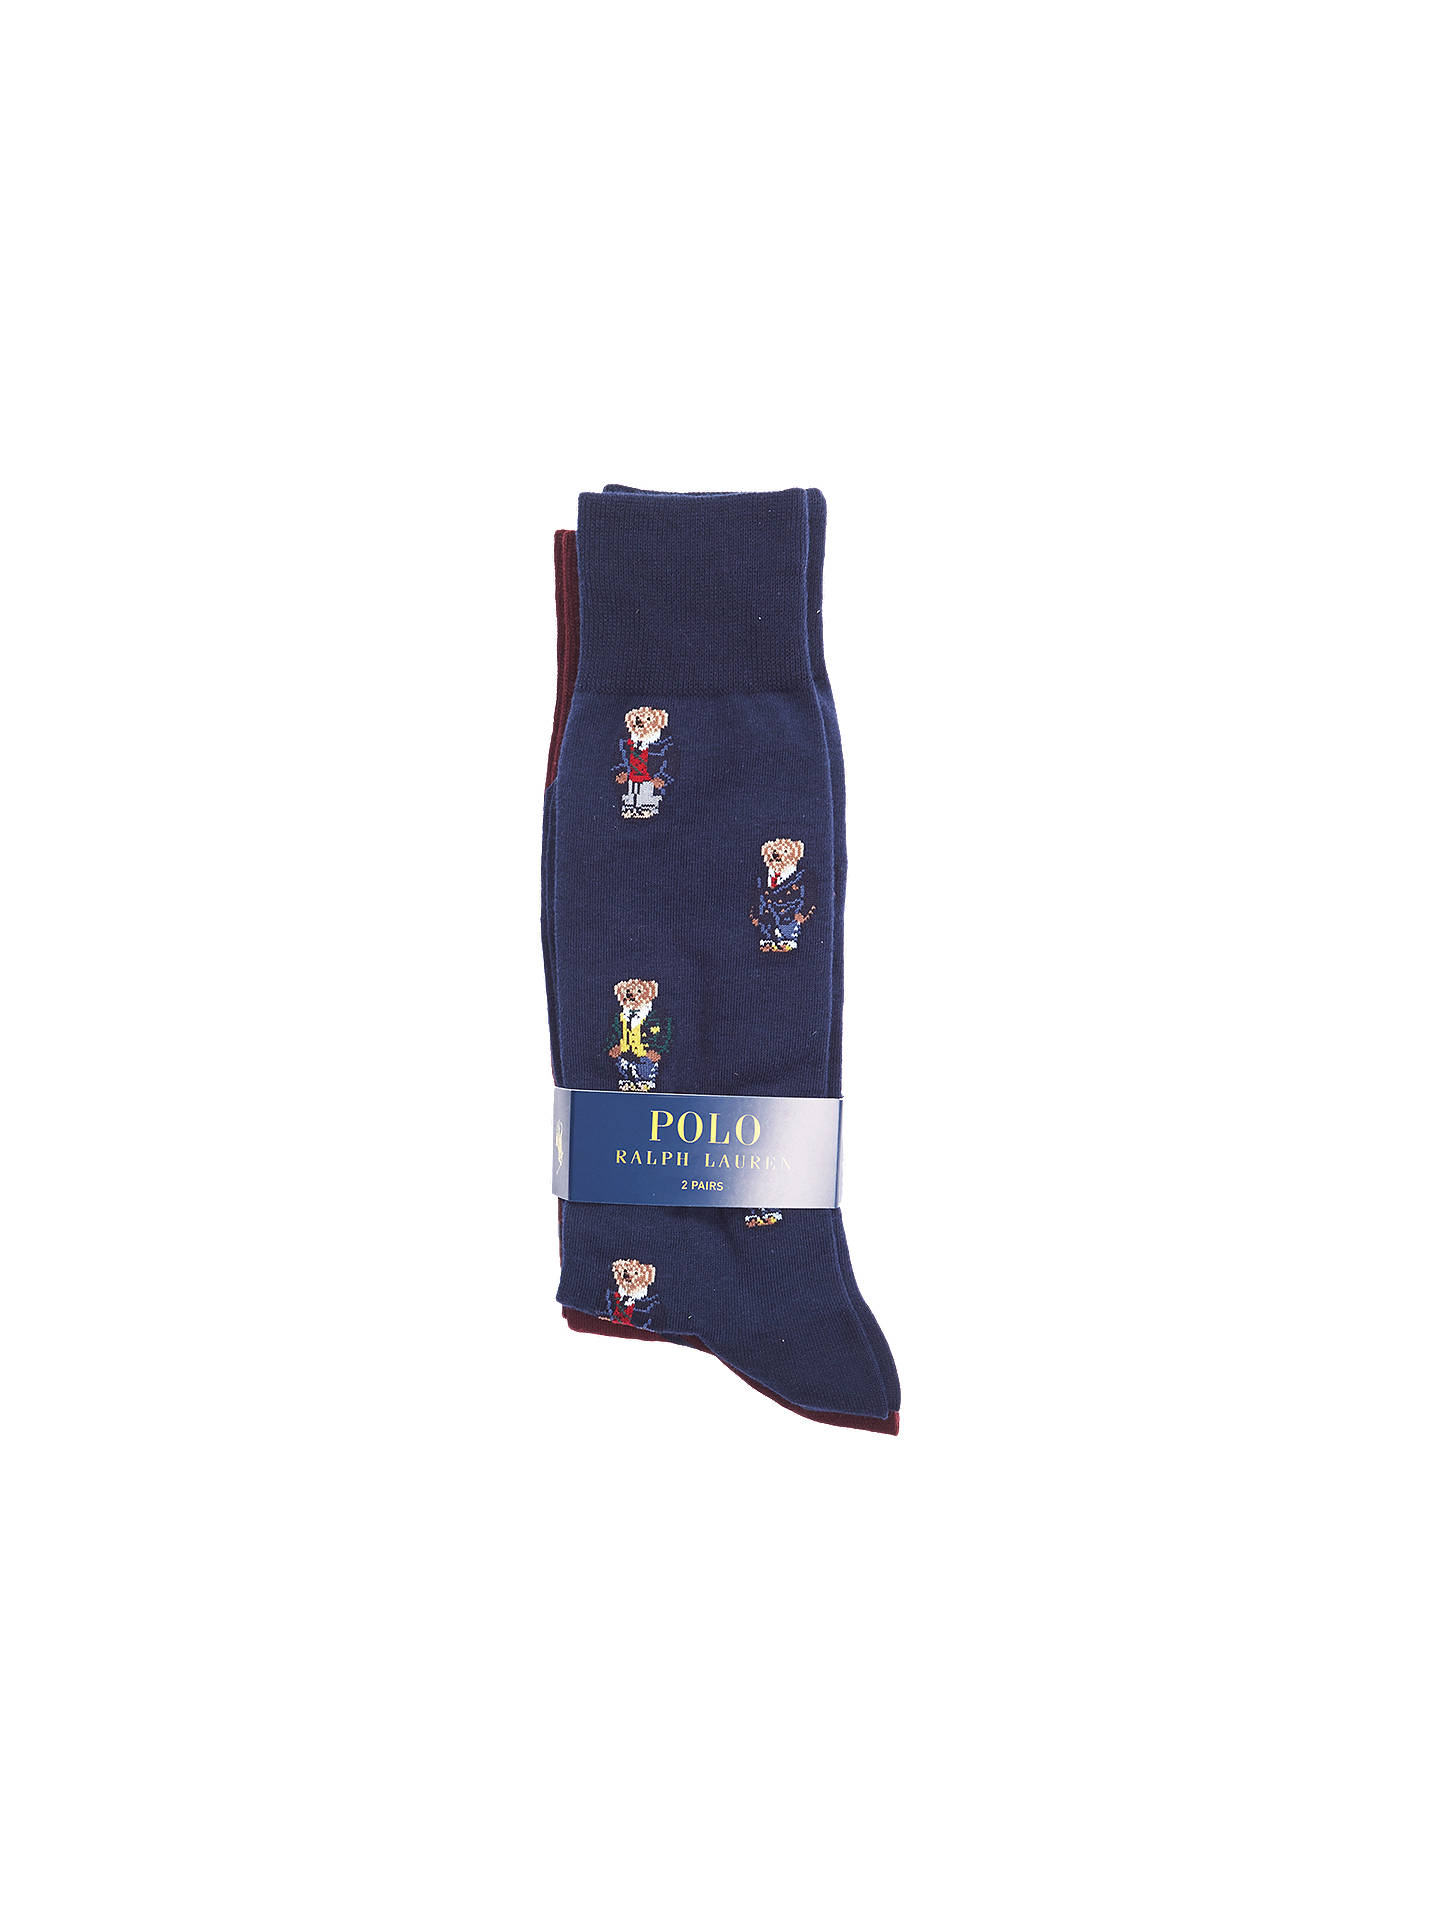 Buy Polo Ralph Lauren Bear Pattern Socks, Pack of 2, One Size Online at johnlewis.com